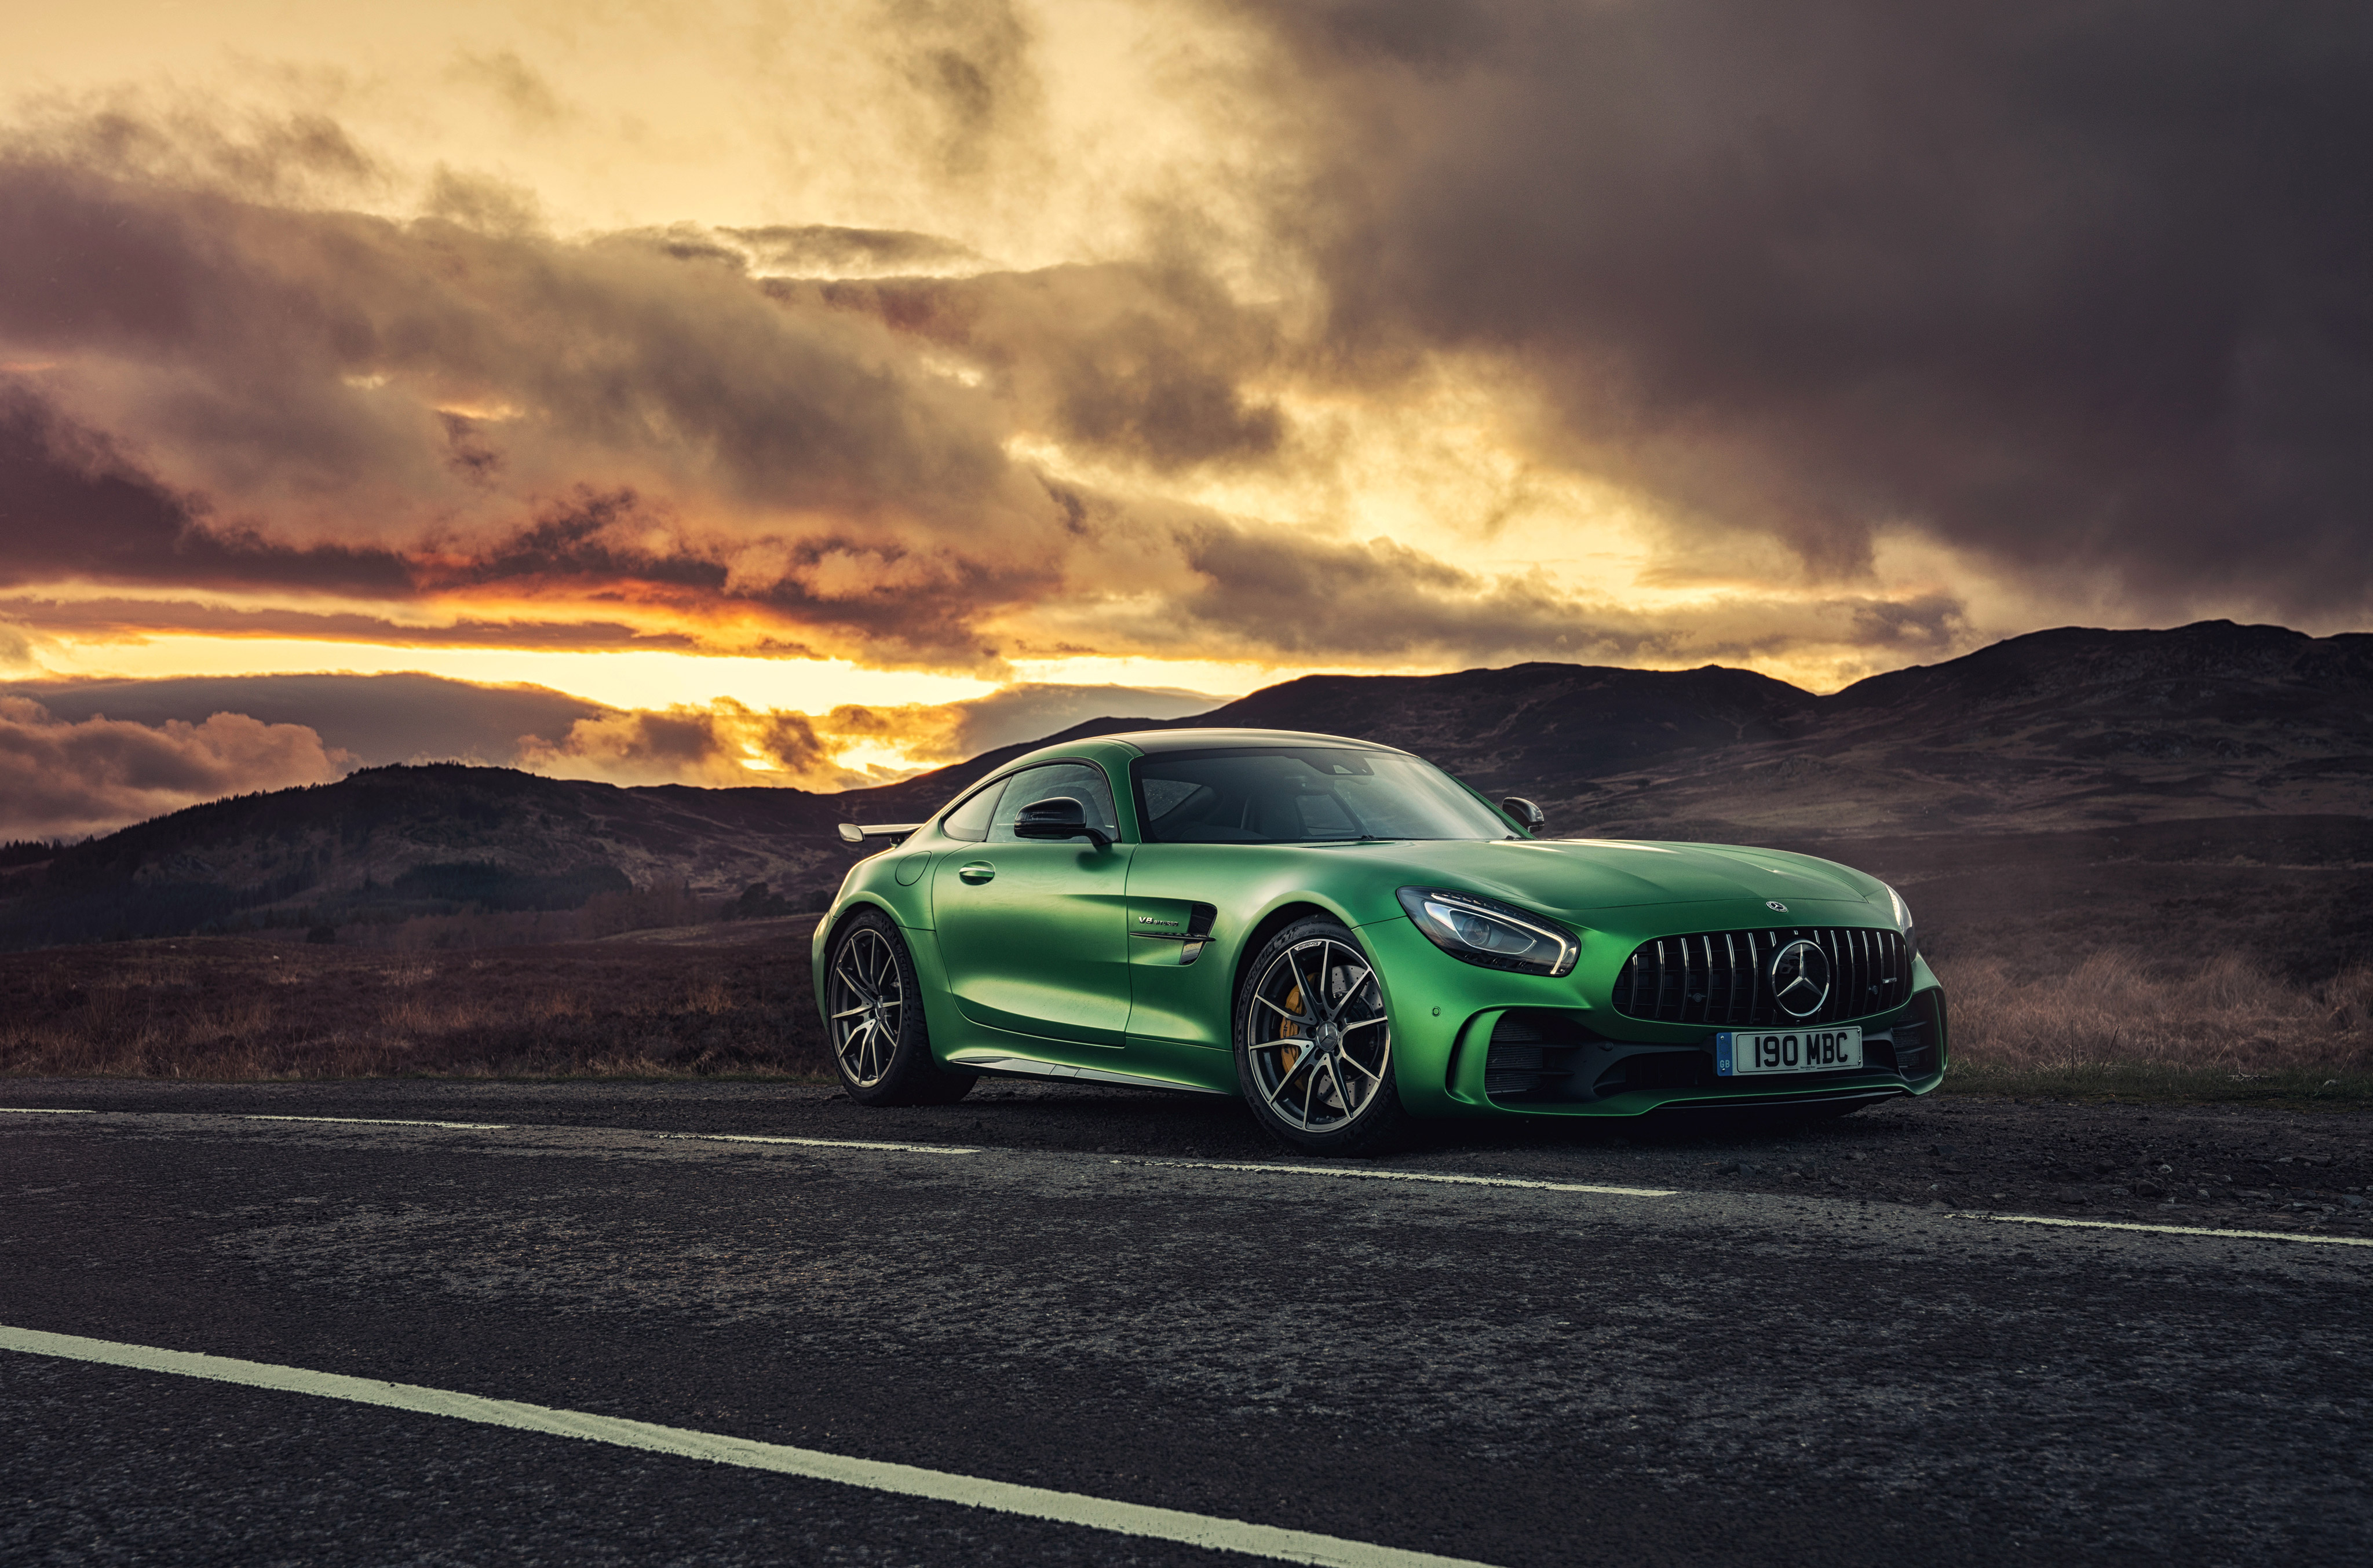 Mercedes amg gt r c190 2017 hd cars 4k wallpapers for 2017 mercedes benz amg gt